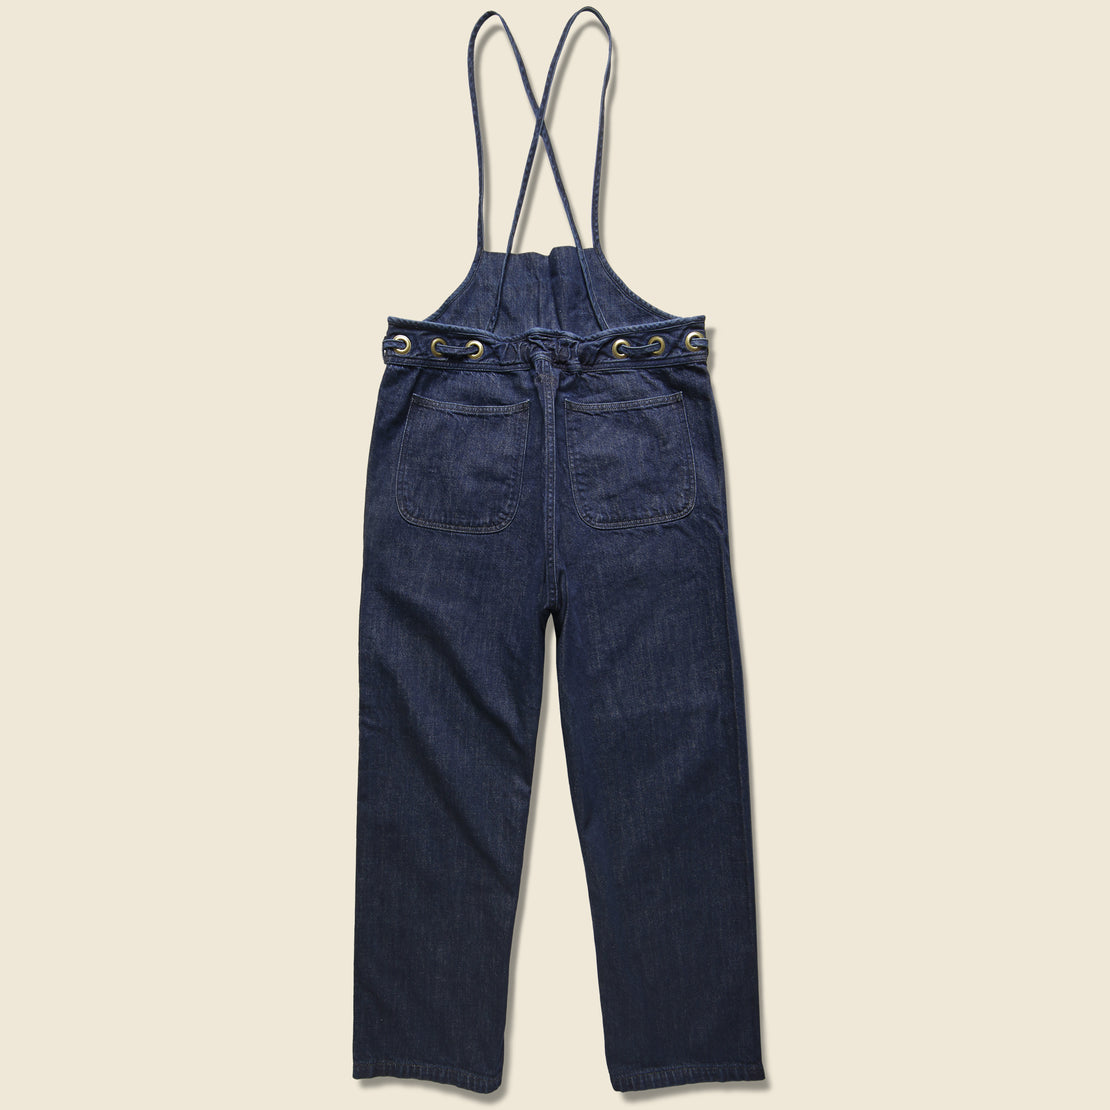 Denim Welder Overall - 12oz. Indigo